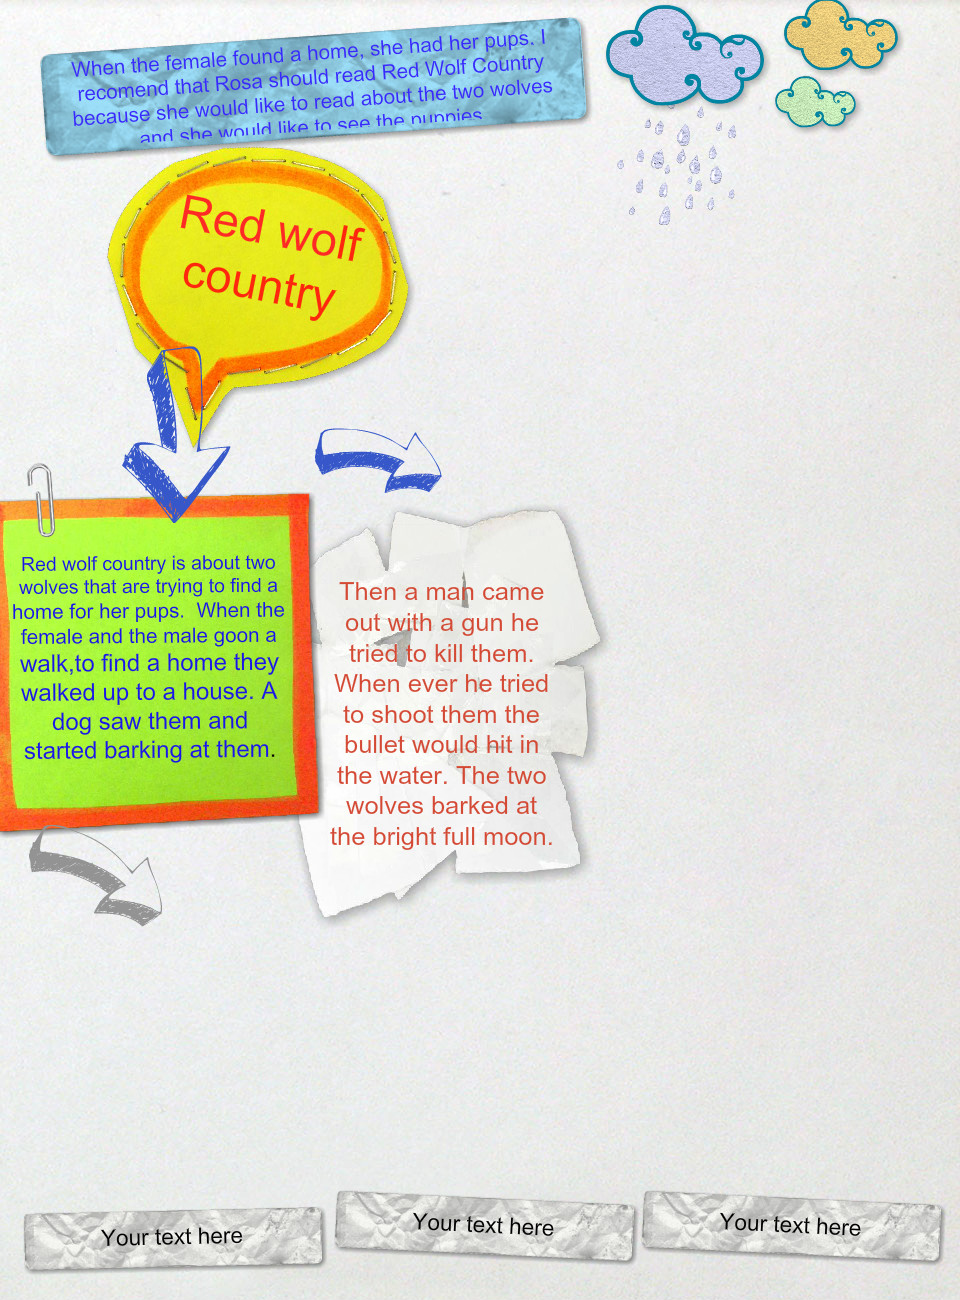 Red wolf country's thumbnail